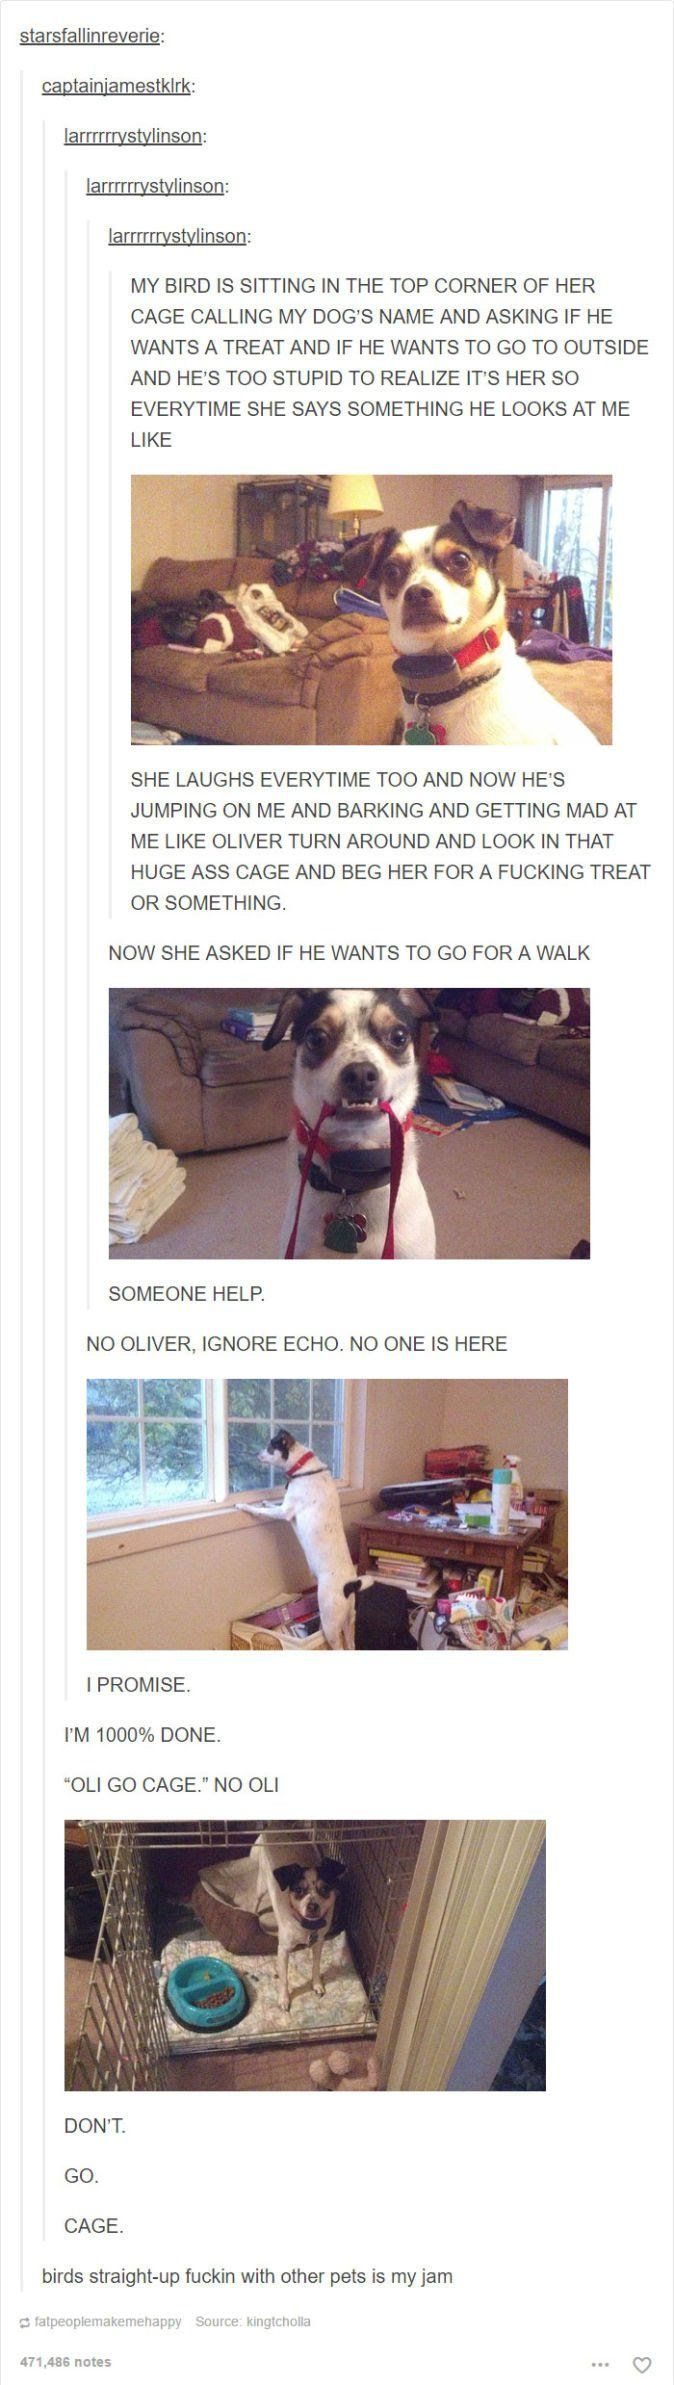 24 Dog Posts on Tumblr That Are Impossible Not to Laugh At | BlazePress